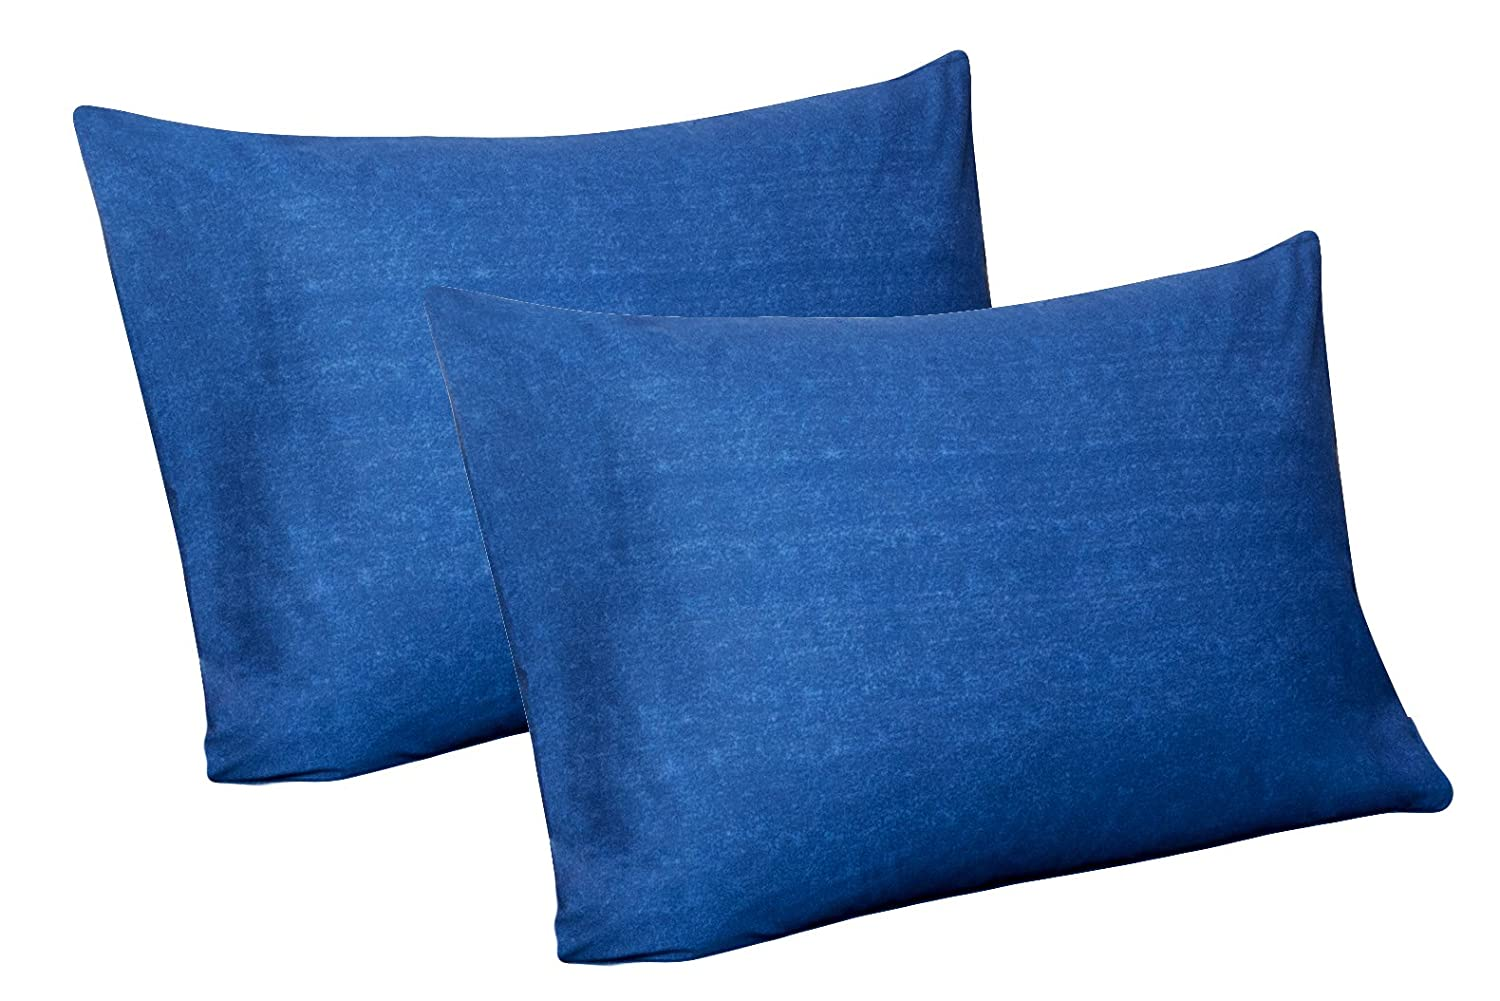 100% Jersey Knit Cotton, 2 Standard Pillow Case (Denim Blue)